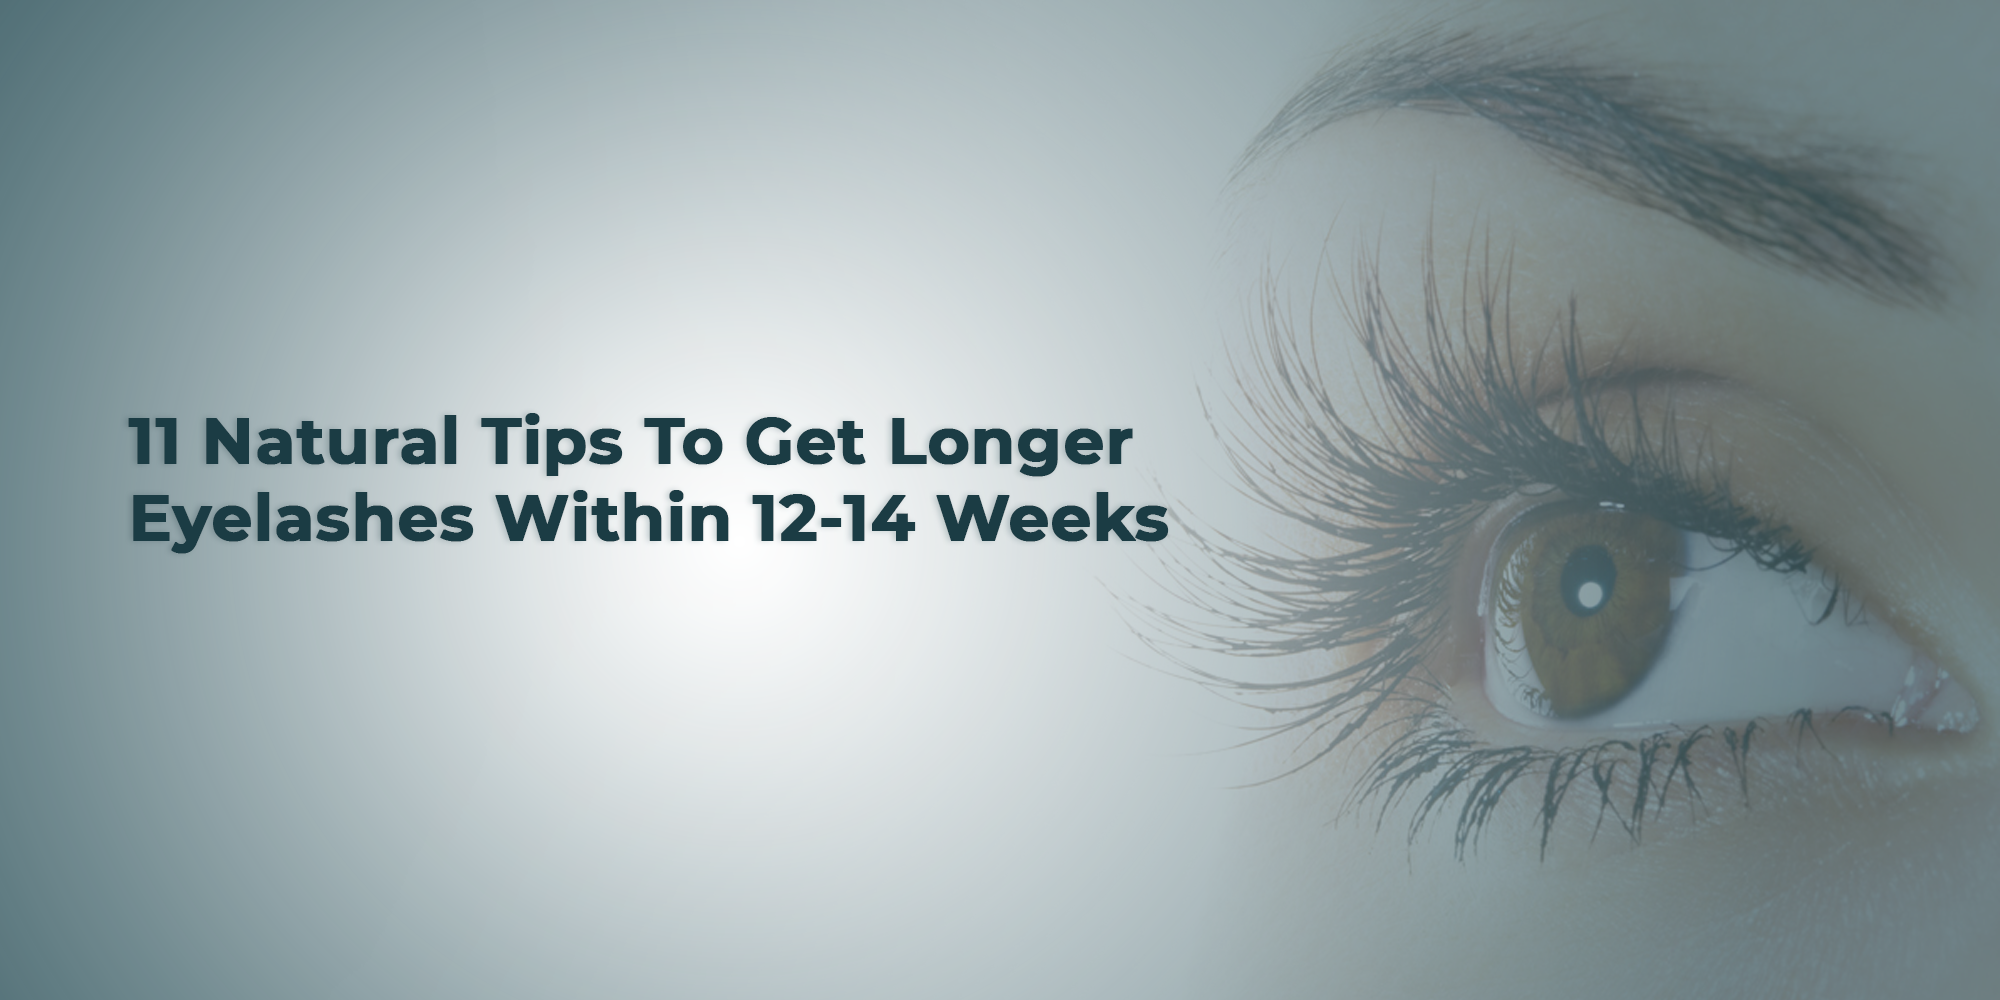 Get Longer Eyelashes Naturally With These 11 Tips